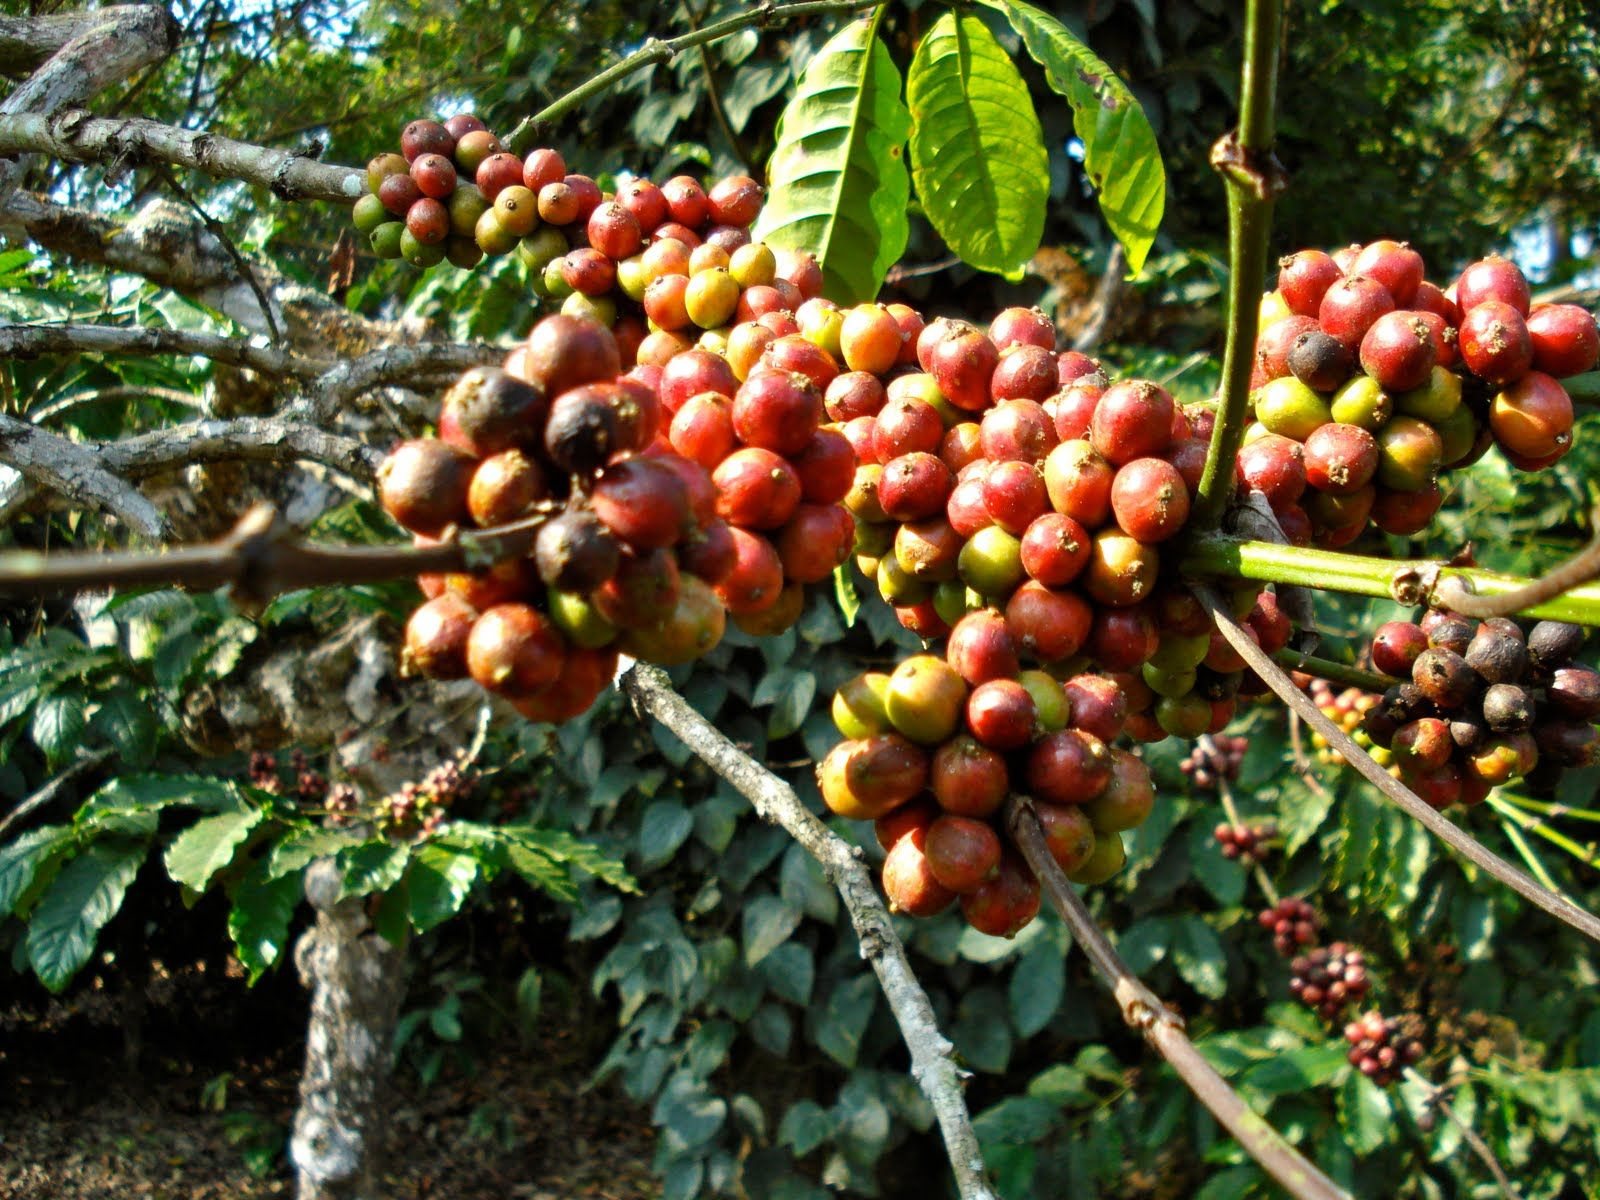 Coffee cherries from a Robusta plant in Virajpet,